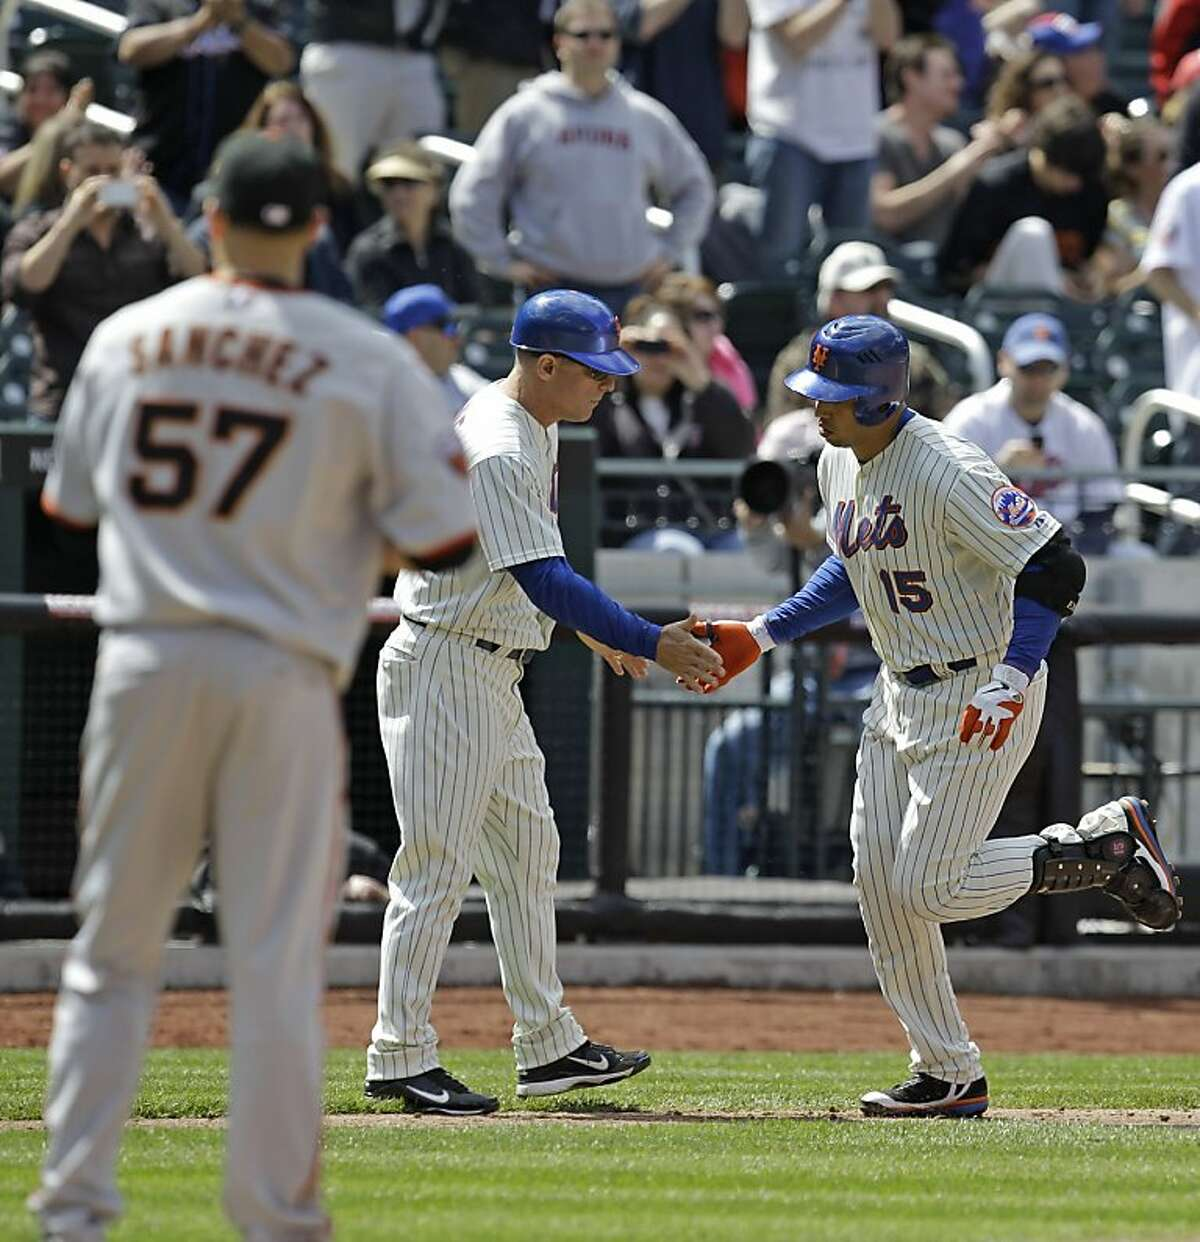 San Francisco Giants starting pitcher Jonathan Sanchez (57) watches as New York Mets third base coach Chip Hale congratulates Carlos Beltran (15) after giving up a fifth-inning, two-run homer to Beltran in their baseball game at Citi Field in New York, Thursday, May 5, 2011.